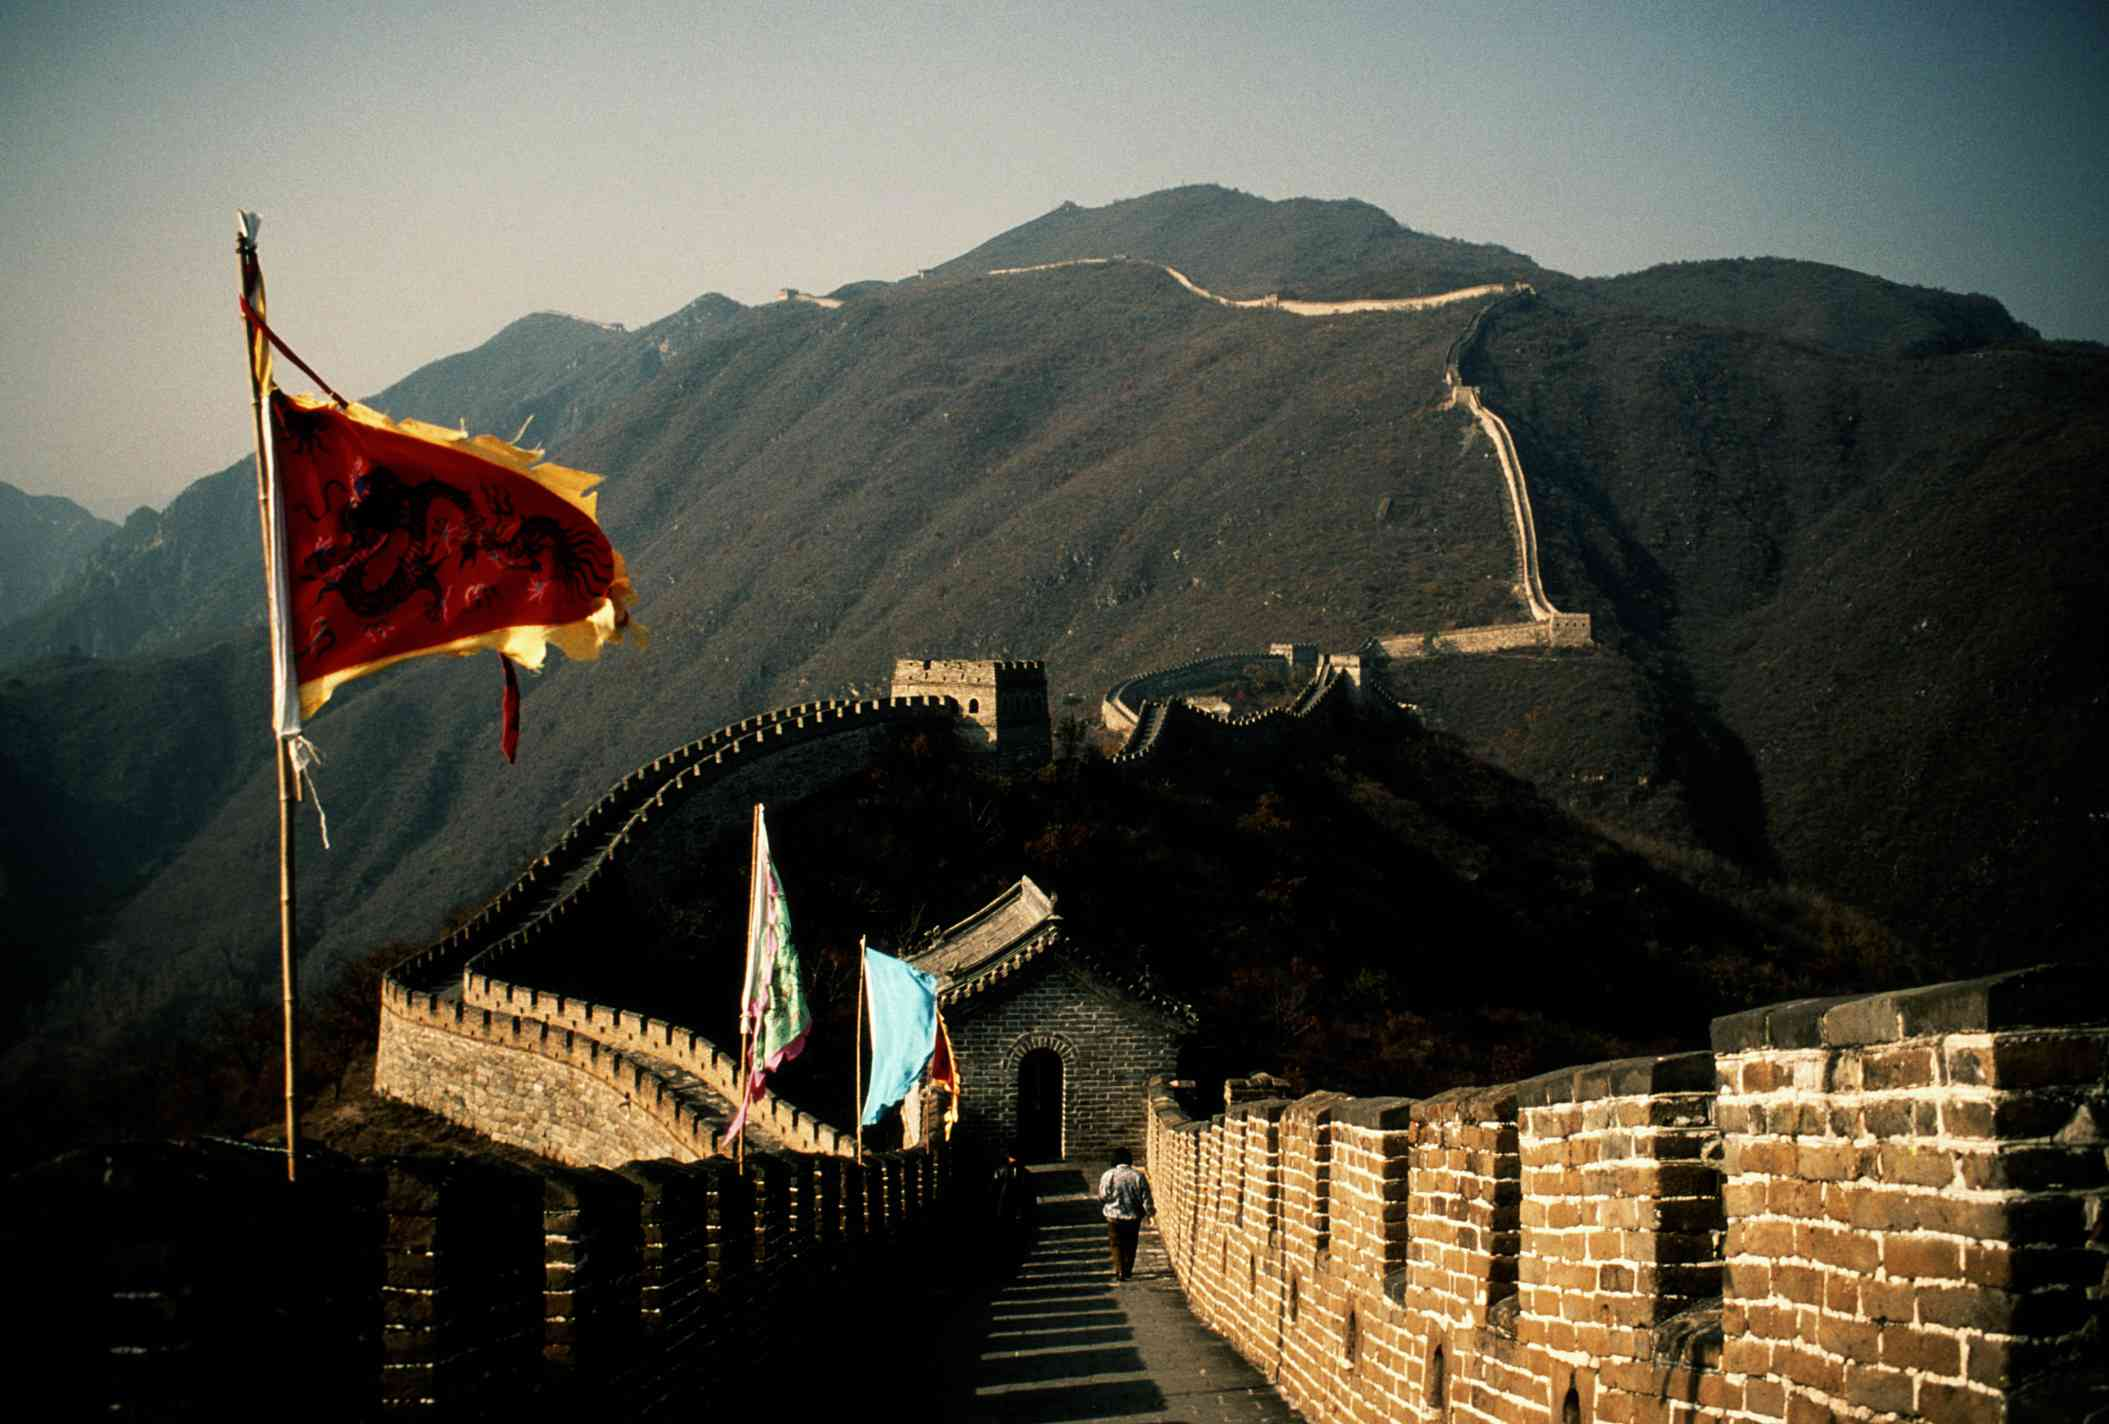 The Great Wall of China stretches over 21,000 kilometers (13,000 miles).